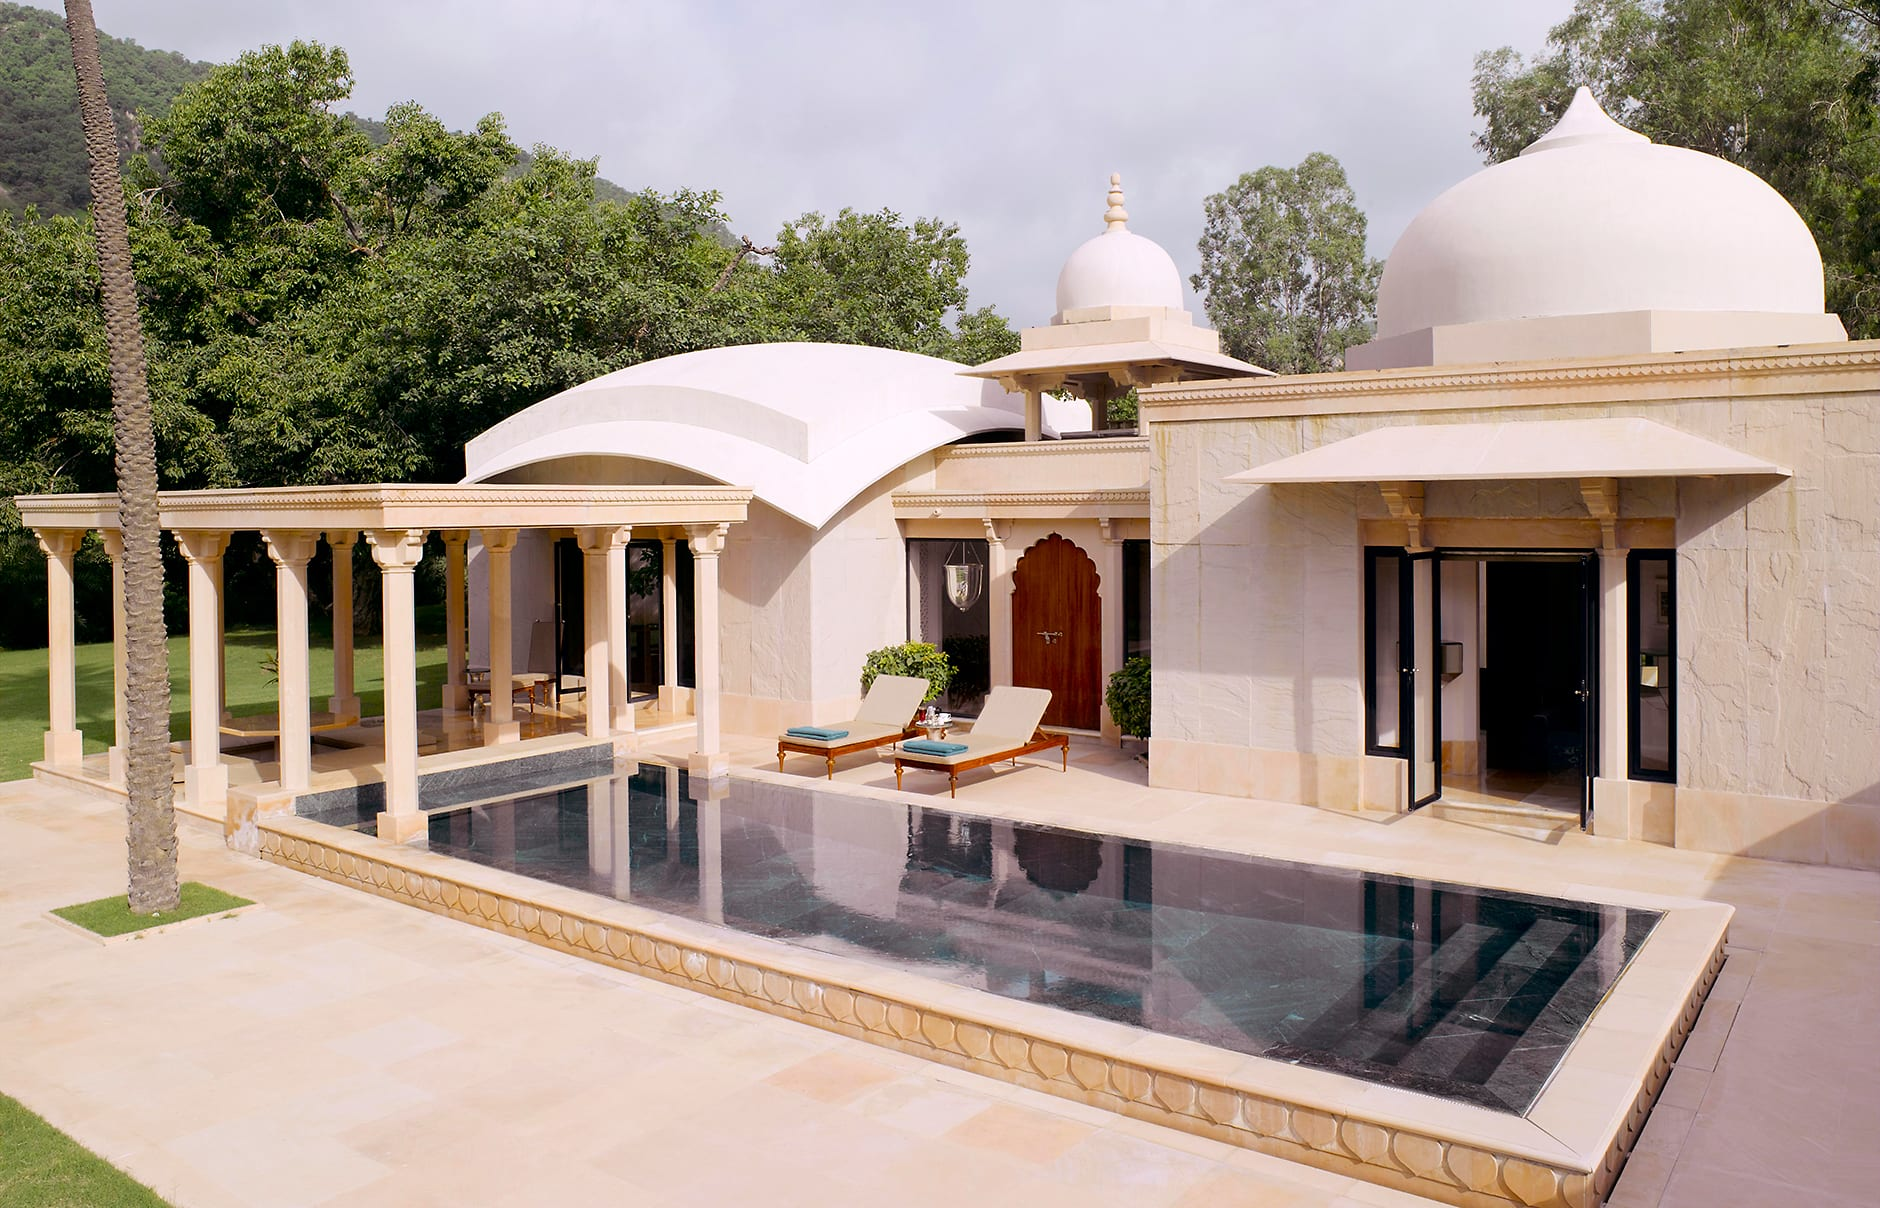 Pool Pavilion. Amanbagh, Alwar, Rajasthan, India. Luxury Hotel Review by TravelPlusStyle. Photo © Aman Resorts